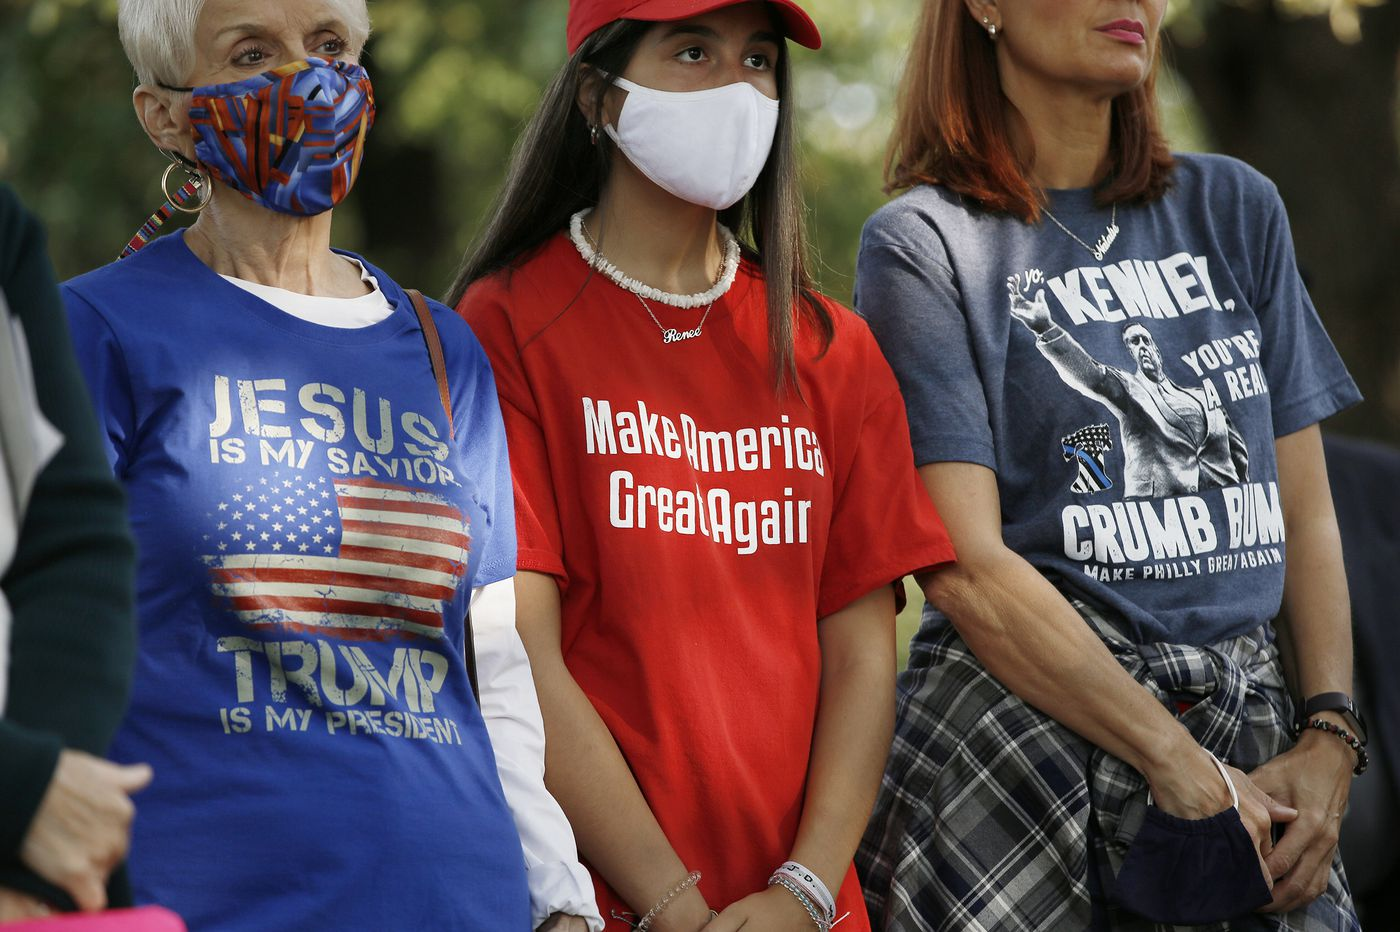 Catholics rally in Philly for hospitalized Trump: 'God wanted everyone to know Trump is a tough guy'